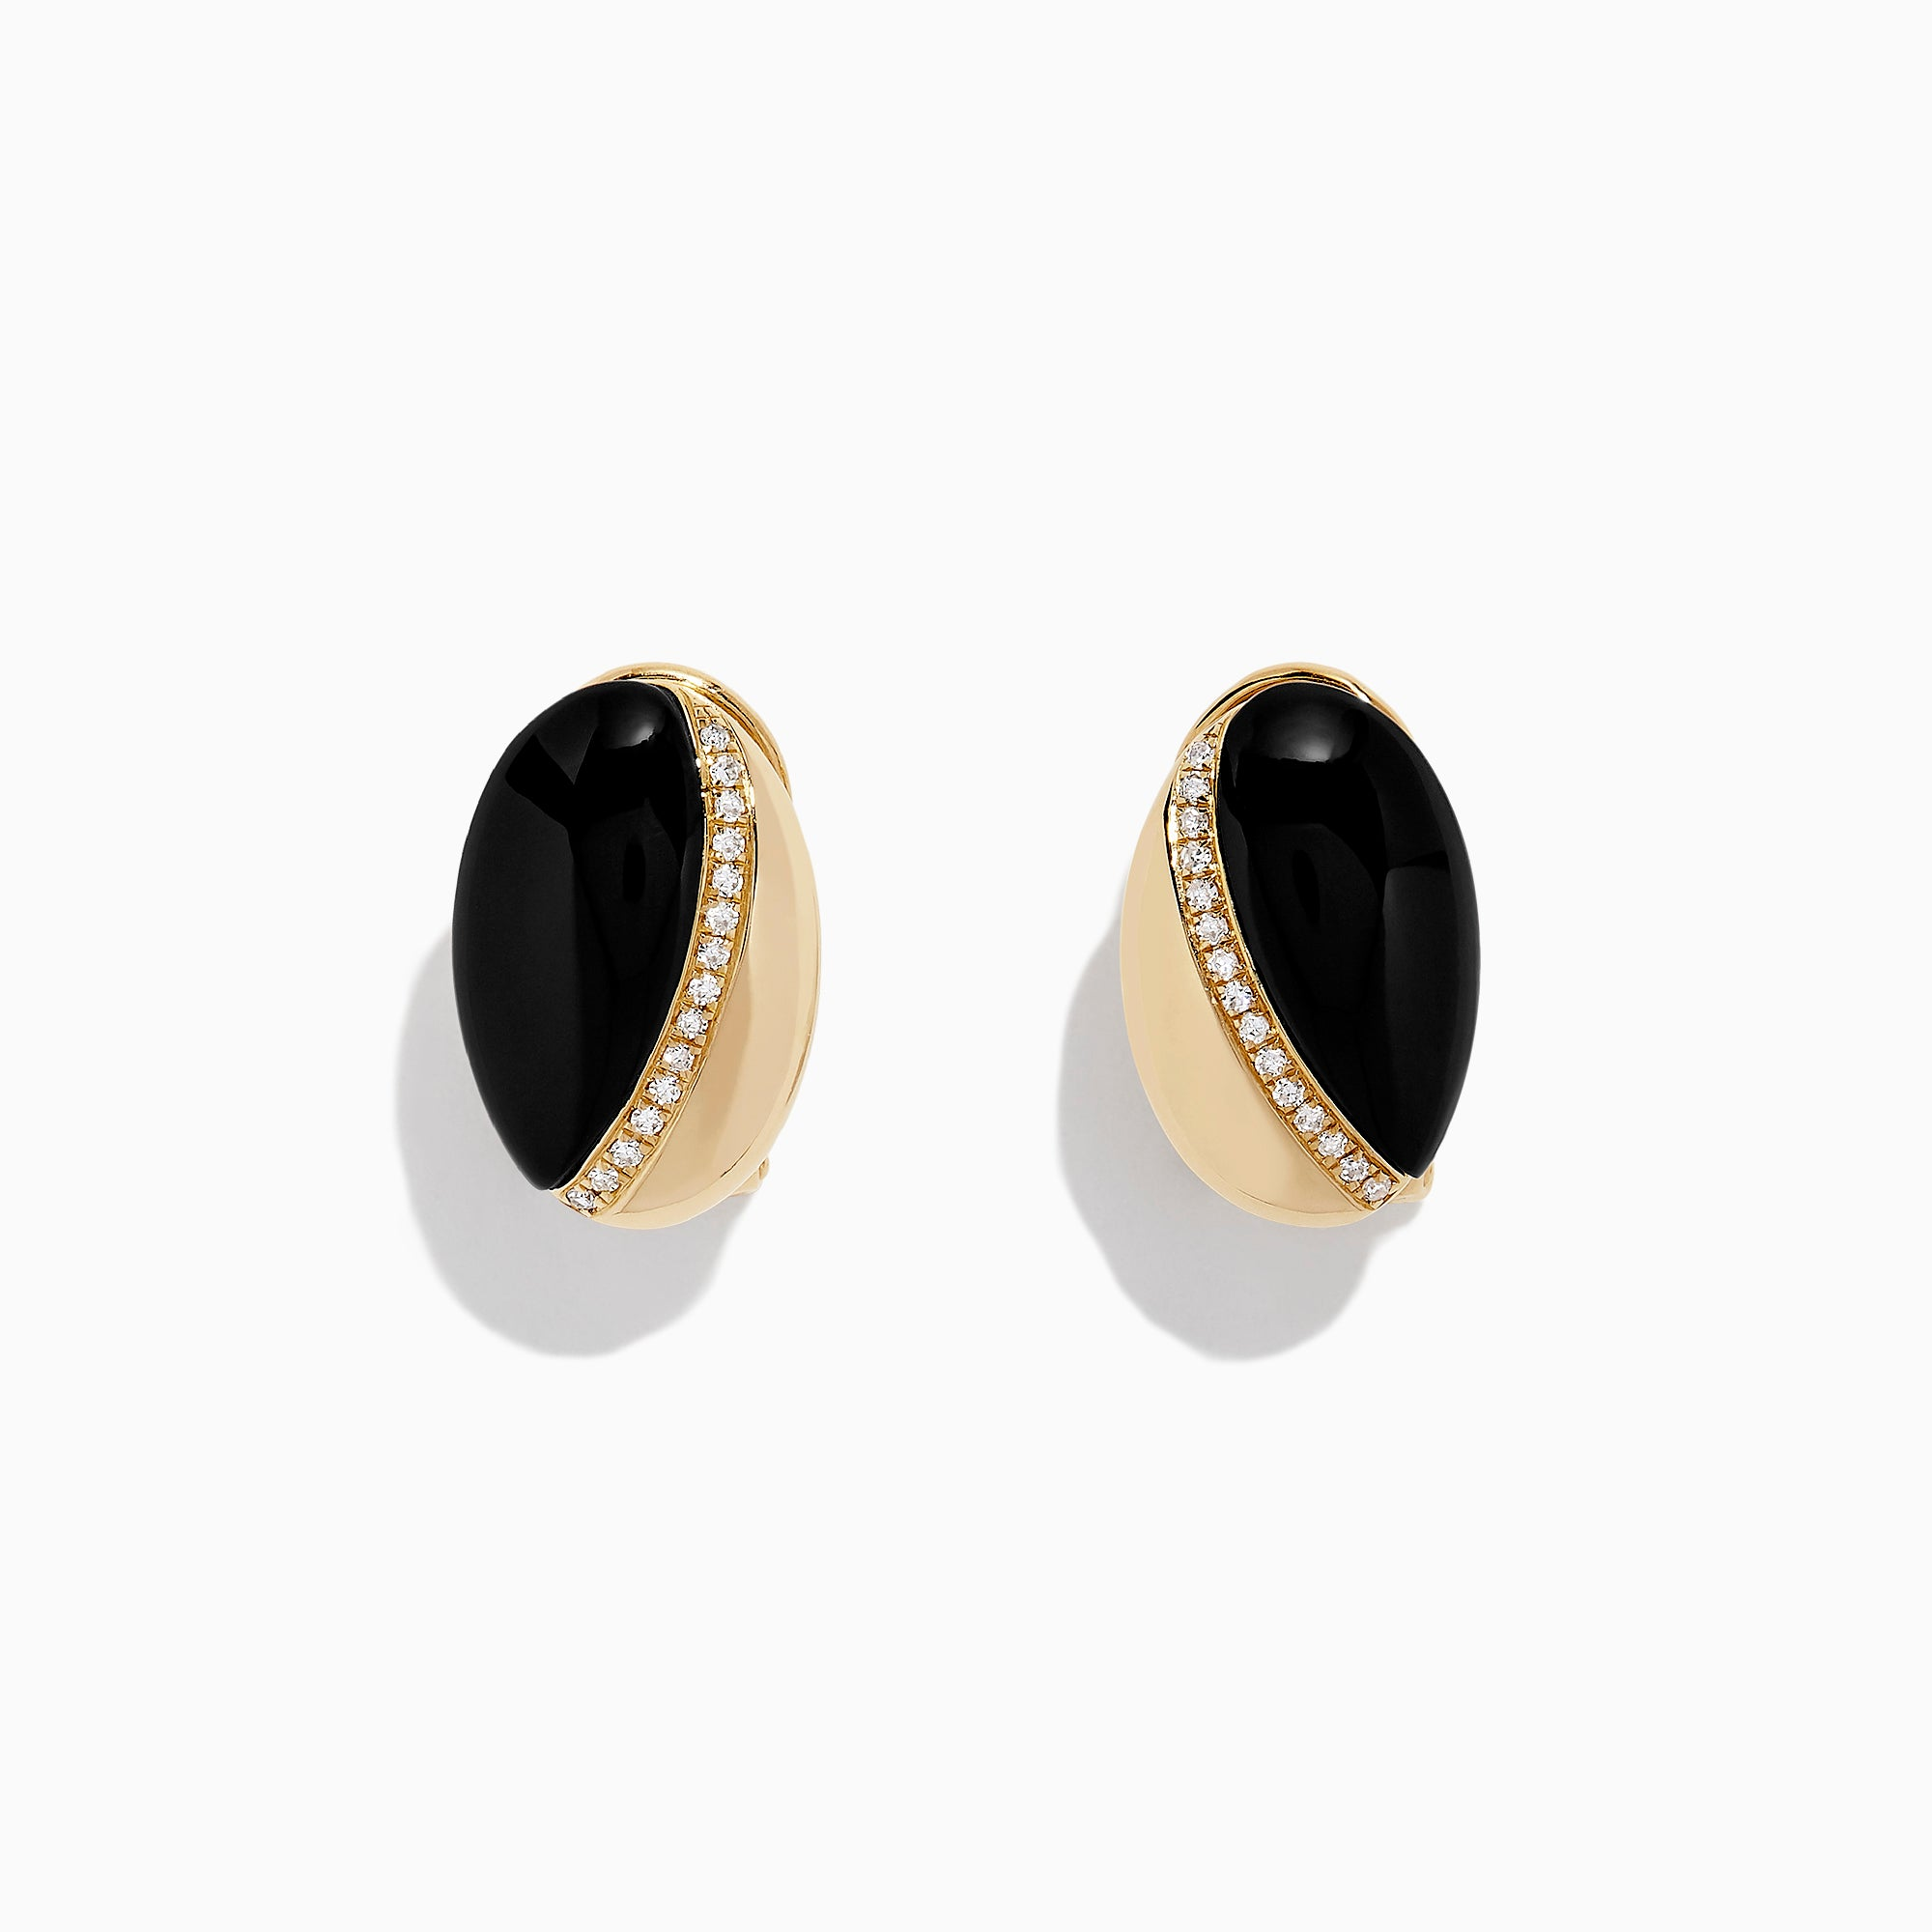 Effy Eclipse 14K Yellow Gold Onyx and Diamond Earrings, 4.61 TCW